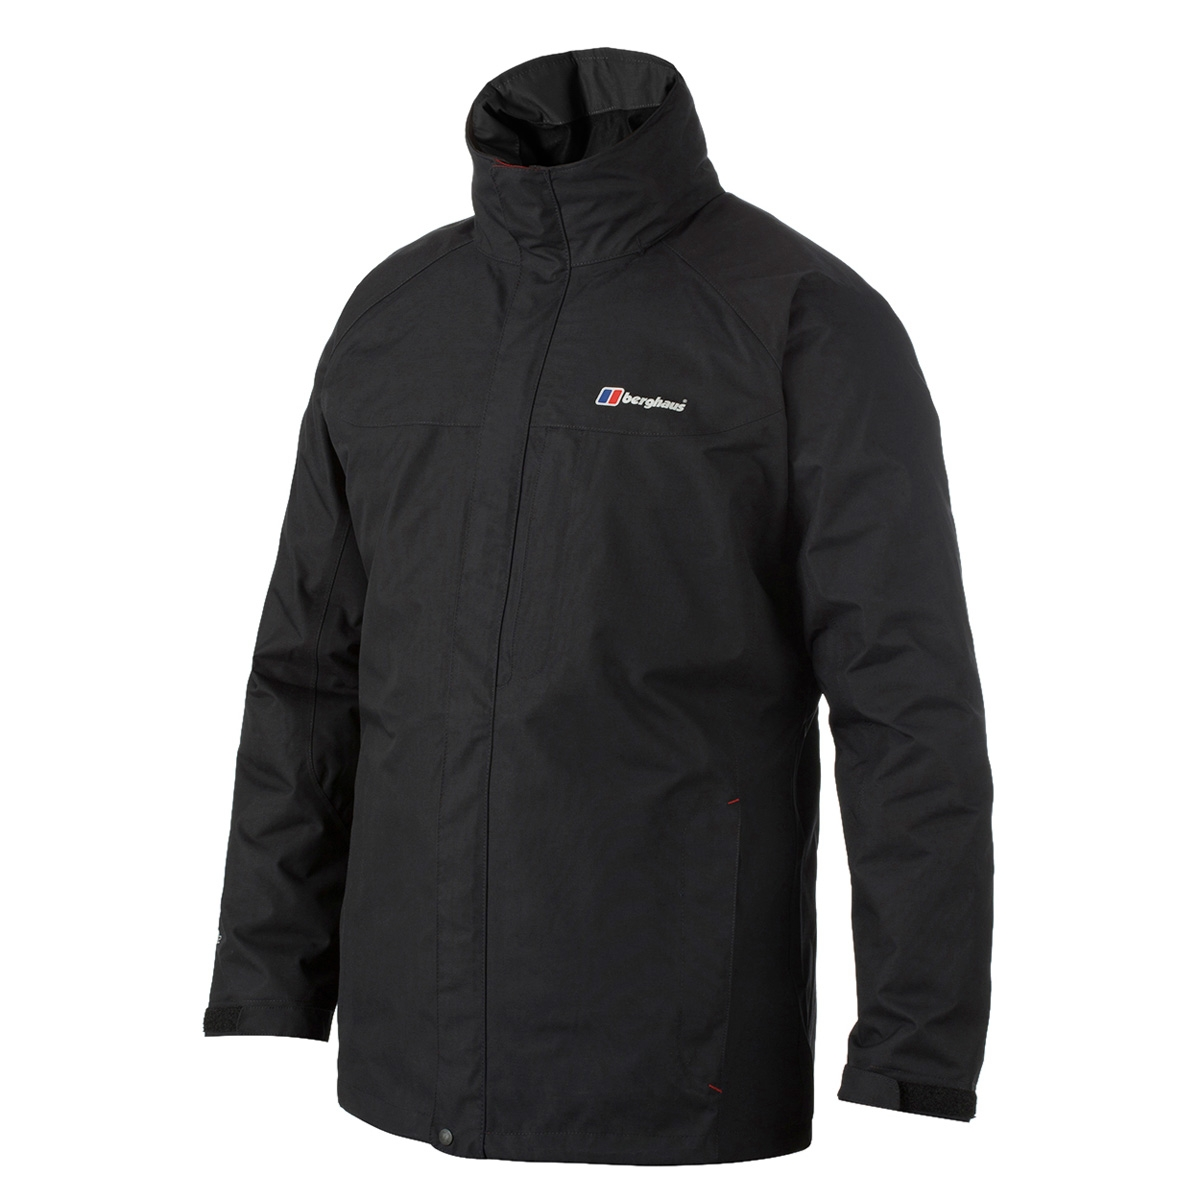 Image of Berghaus RG Gamma Long Jacket (Men's) - Black